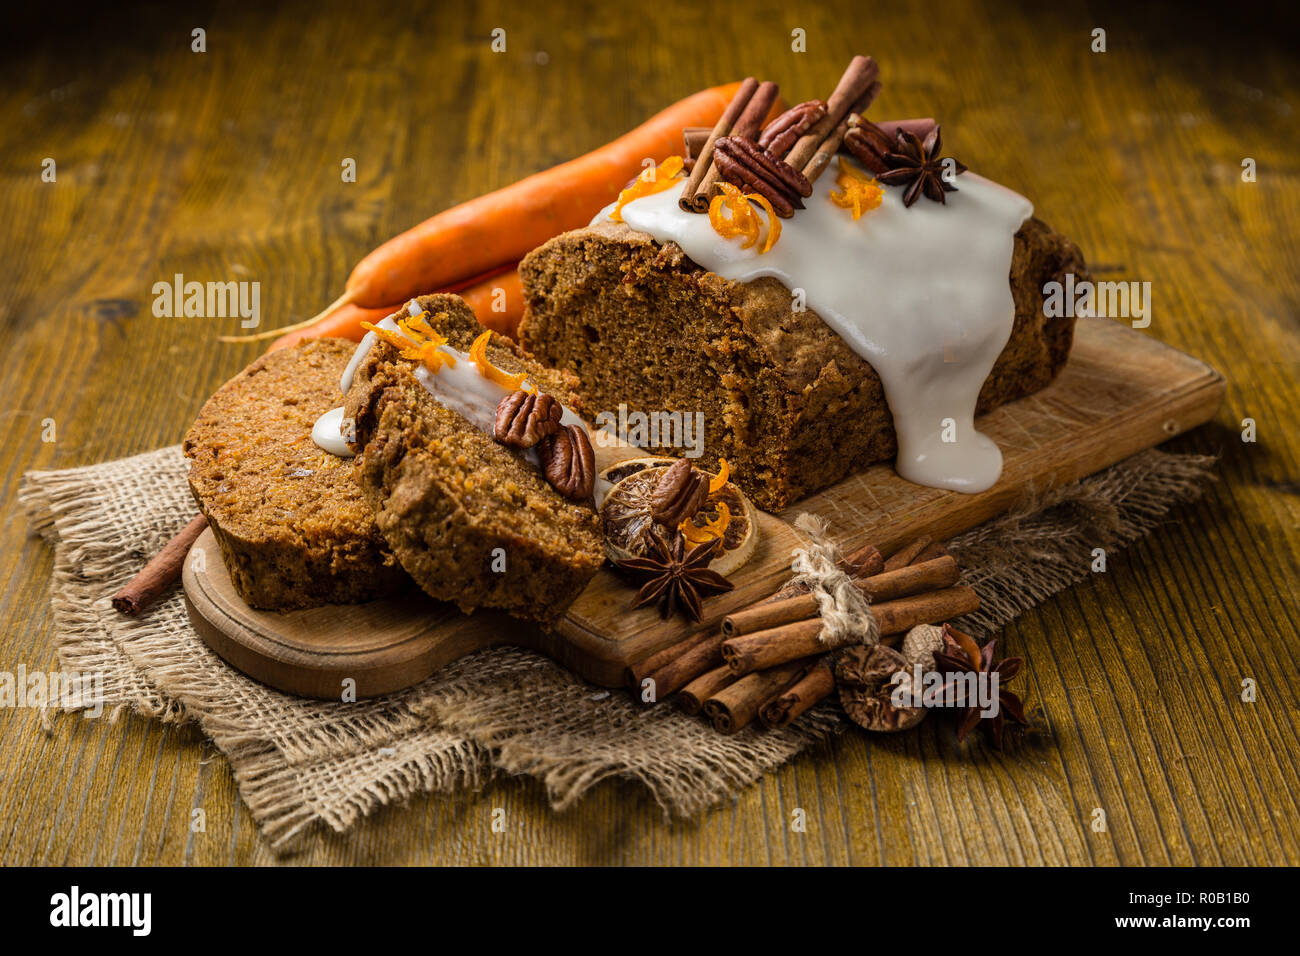 Carrot cake with autumn decorations, rustic wood background - Stock Image